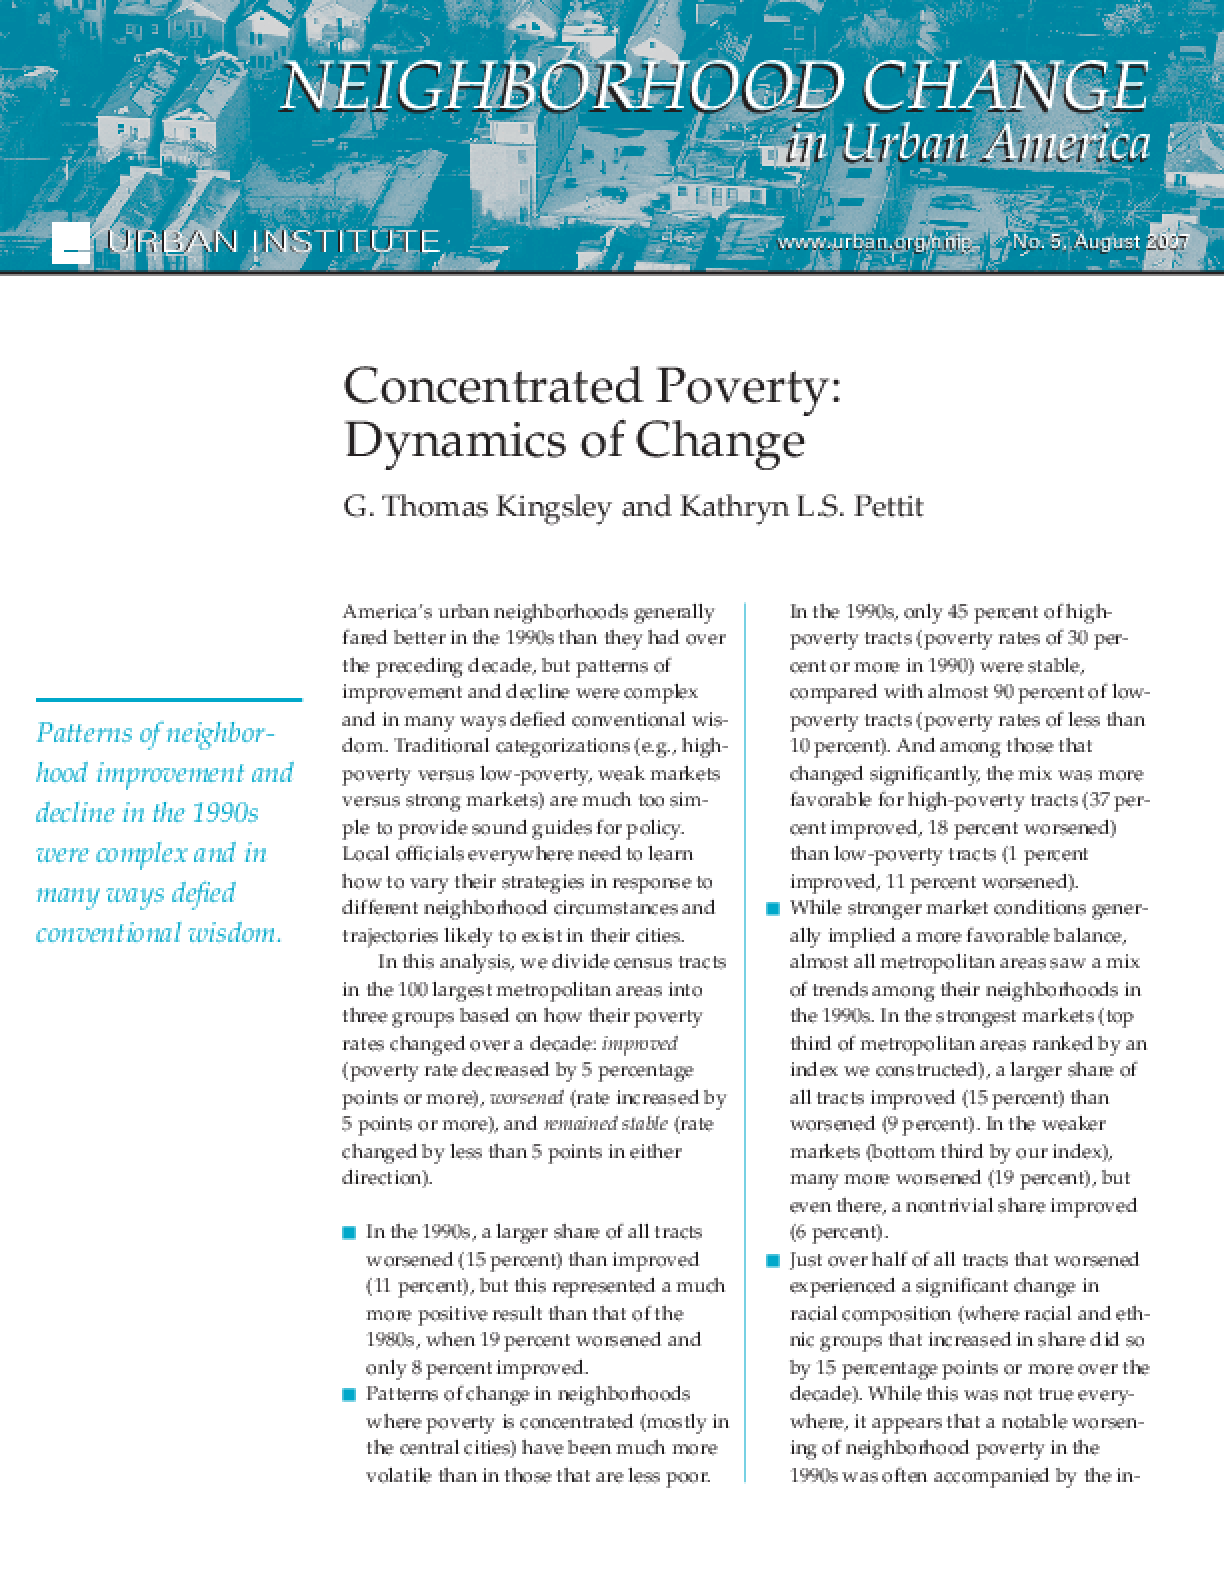 Concentrated Poverty: Dynamics of Change